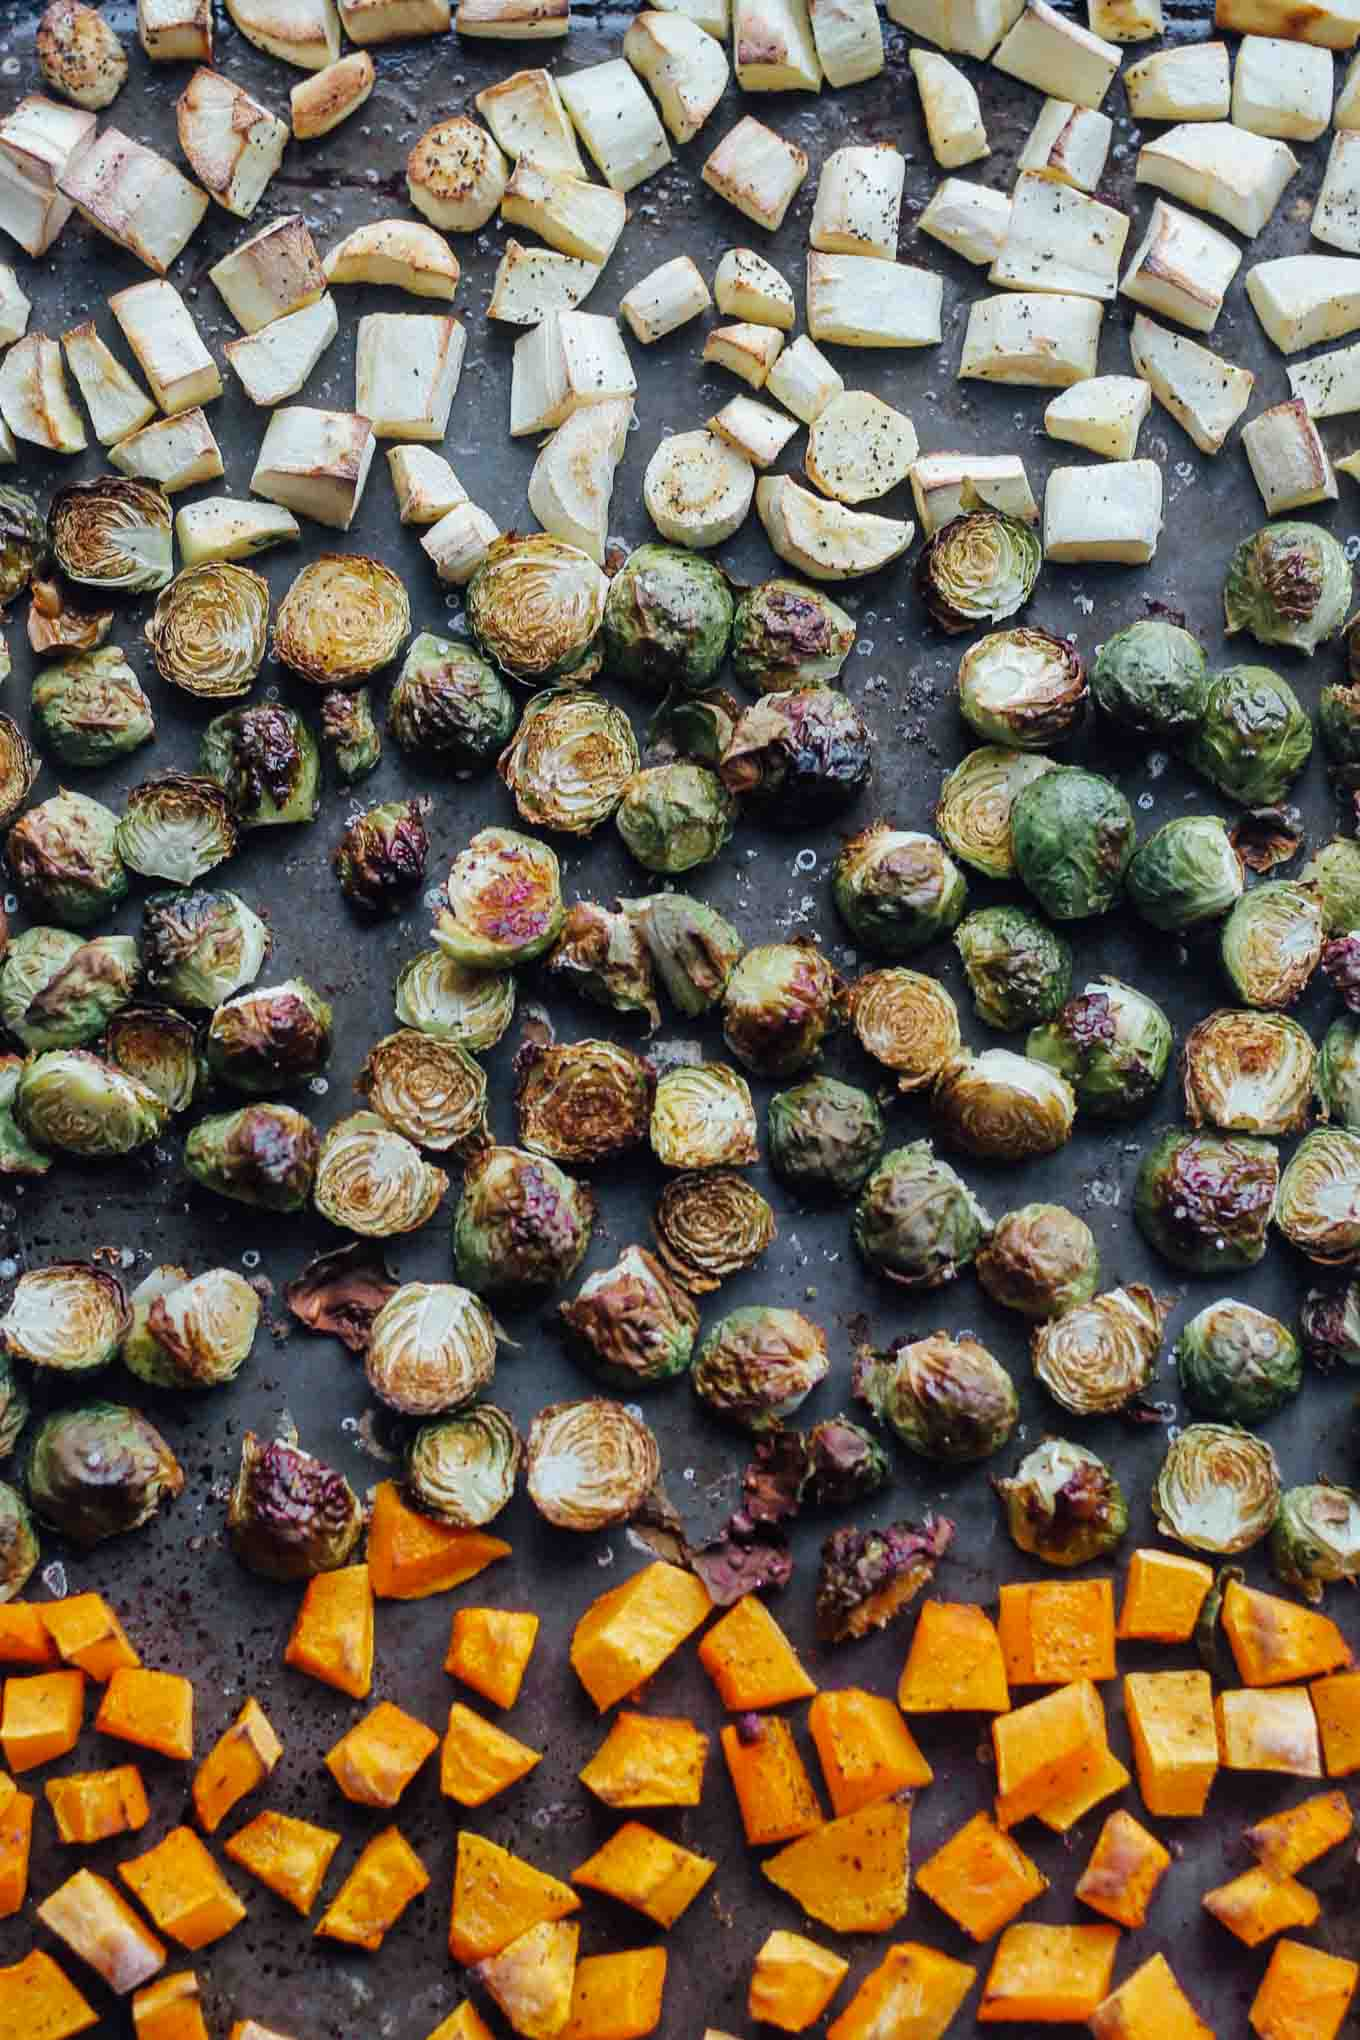 Roasted parsnips, Brussels sprouts, and butternut squash on a sheet pan